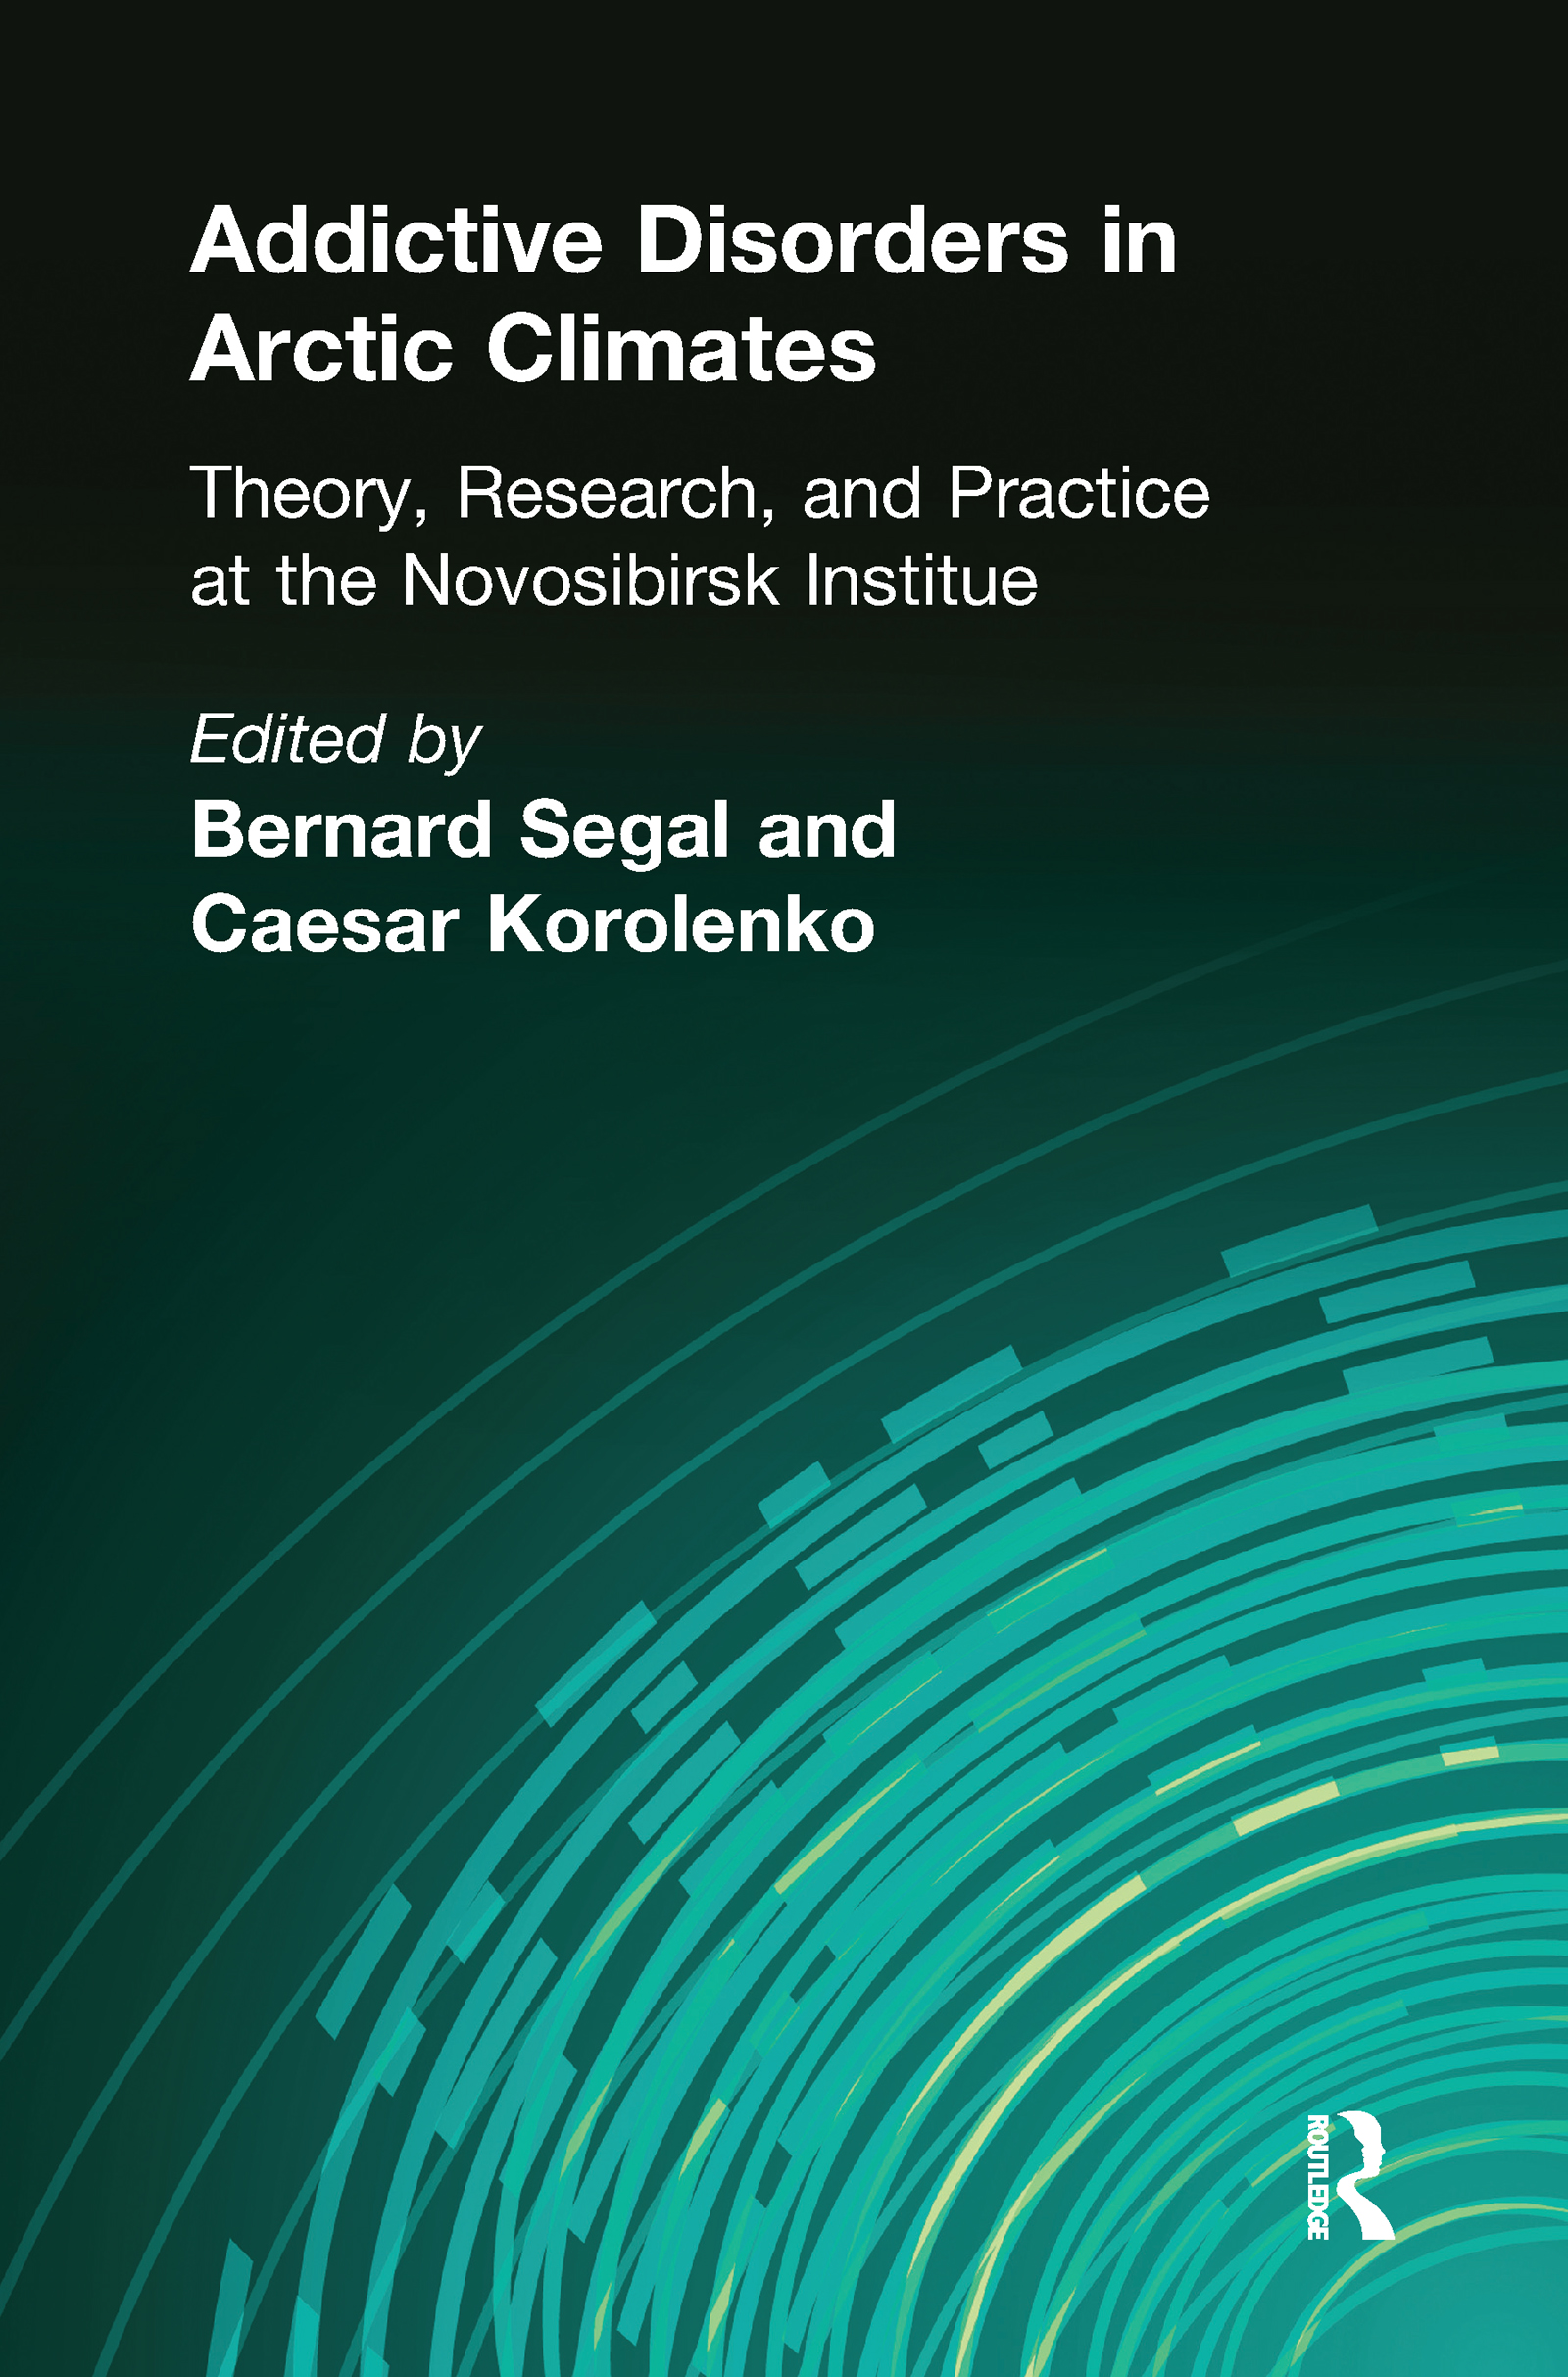 Addictive Disorders in Arctic Climates: Theory, Research, and Practice at the Novosibirsk Institute book cover